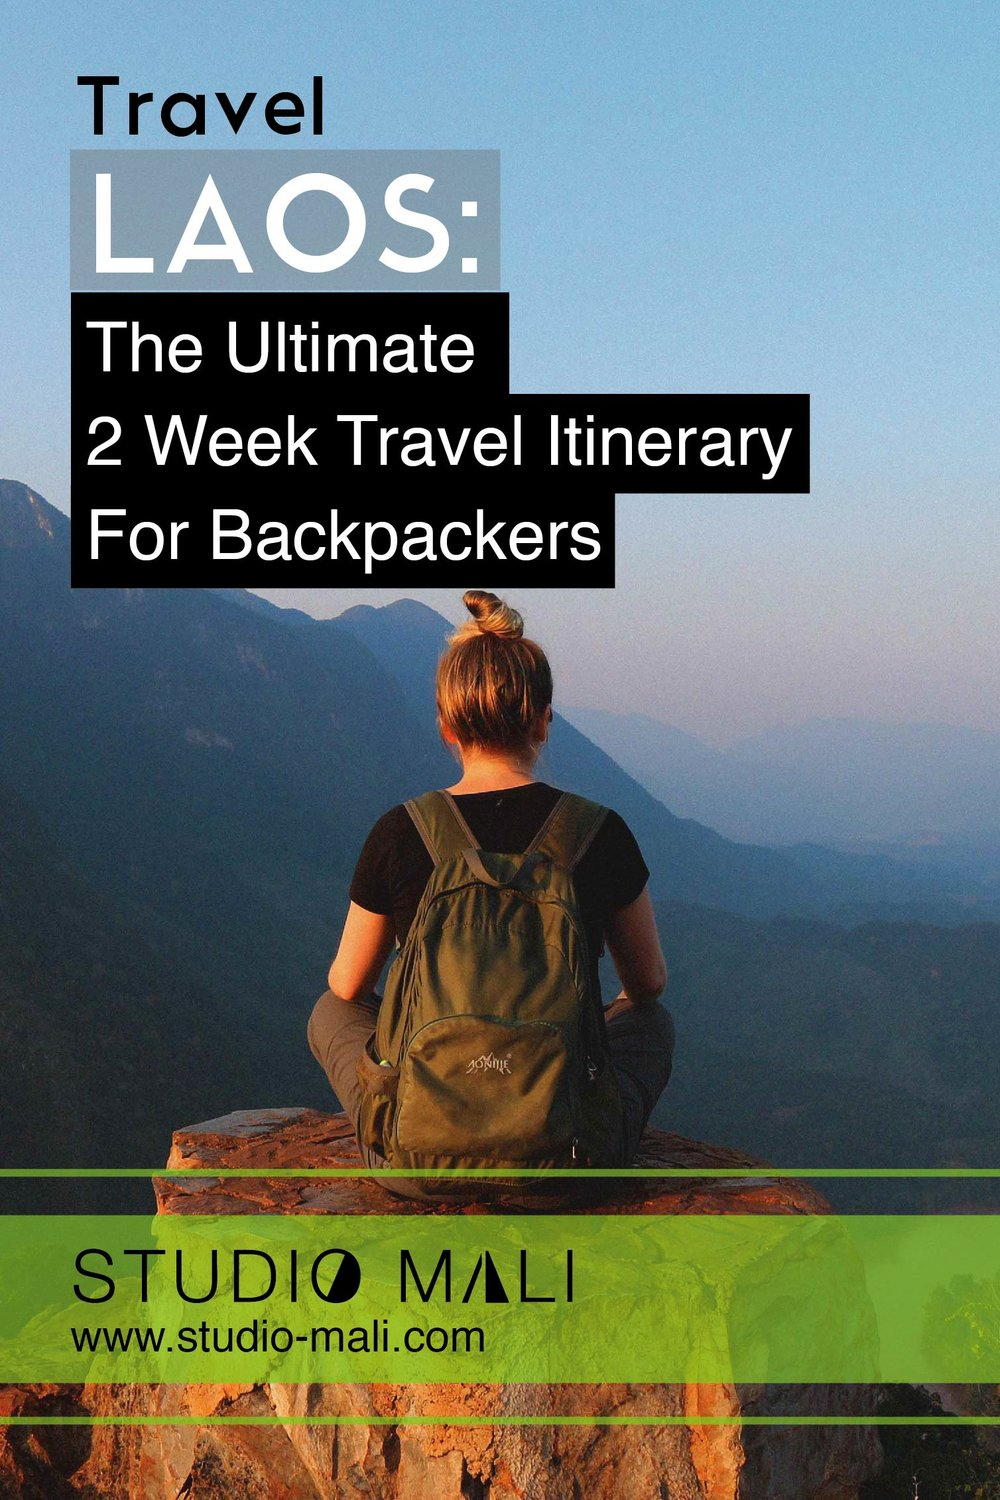 Laos: The Ultimate 2 Week Travel Itinerary For Backpackers, By Studio Mali